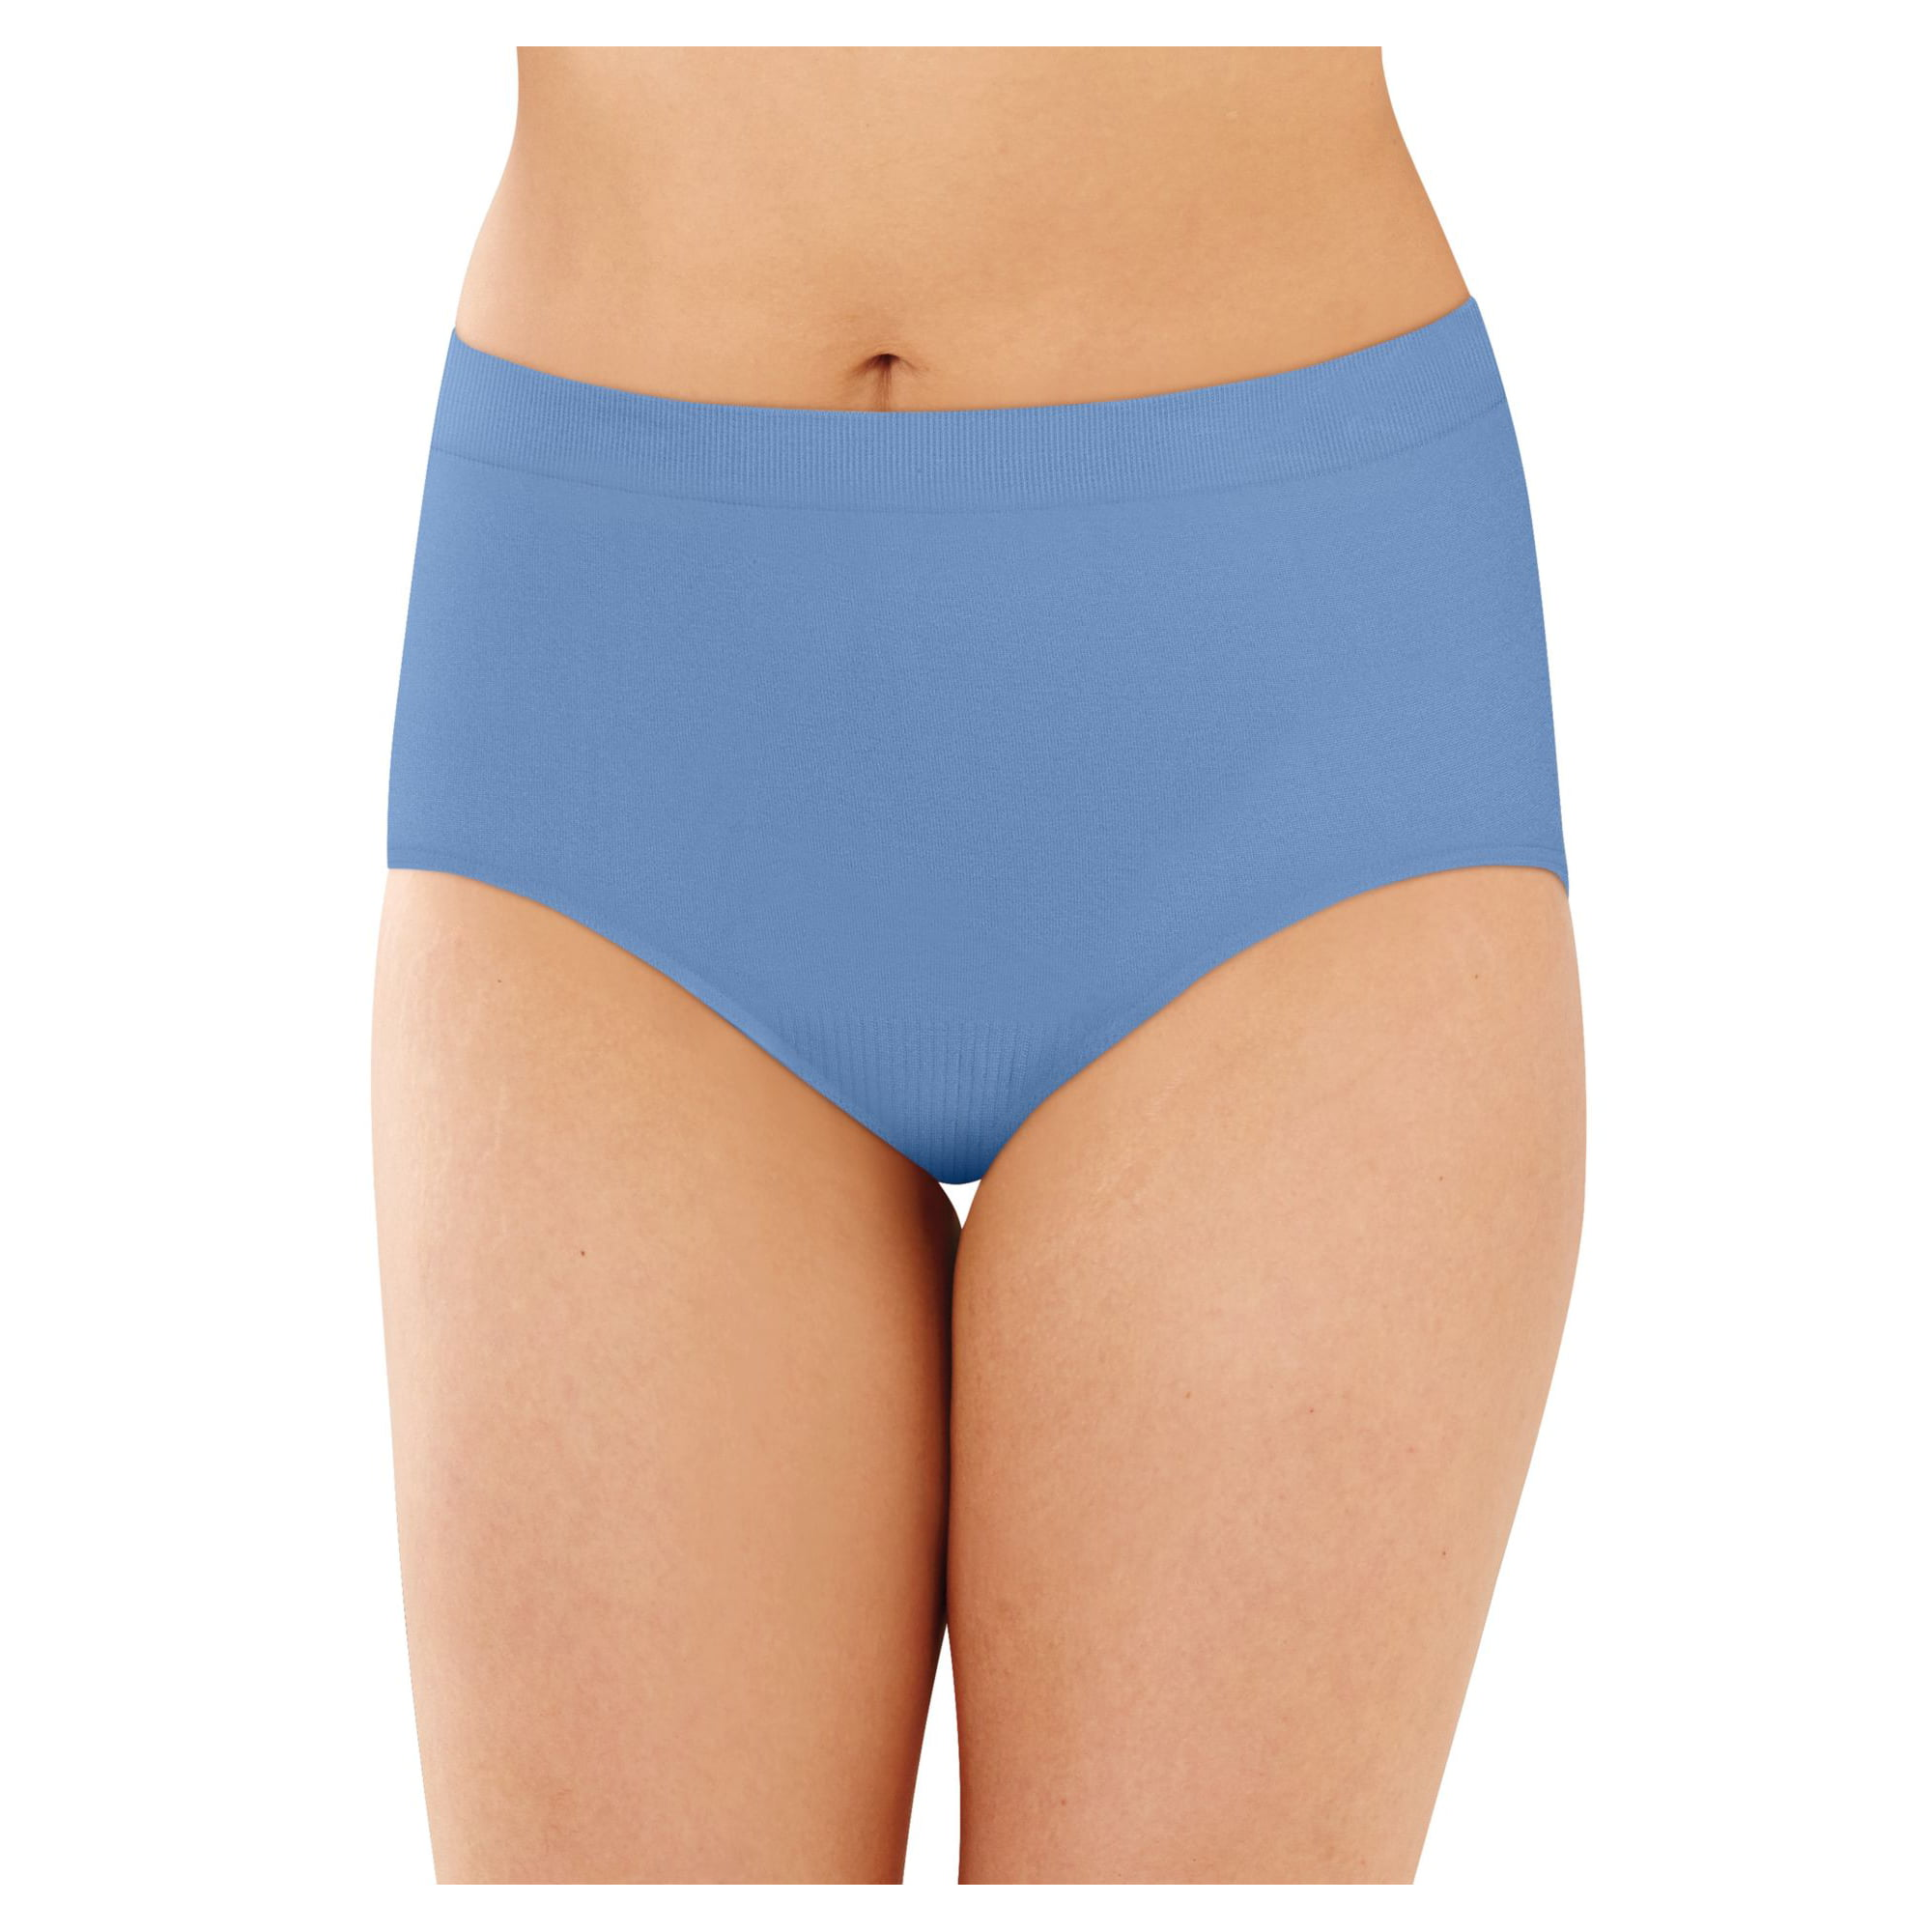 74fd82048eb4 Bali Comfort Revolution Women`s Microfiber Seamless Brief - Best-Seller,  8/9 | Walmart Canada